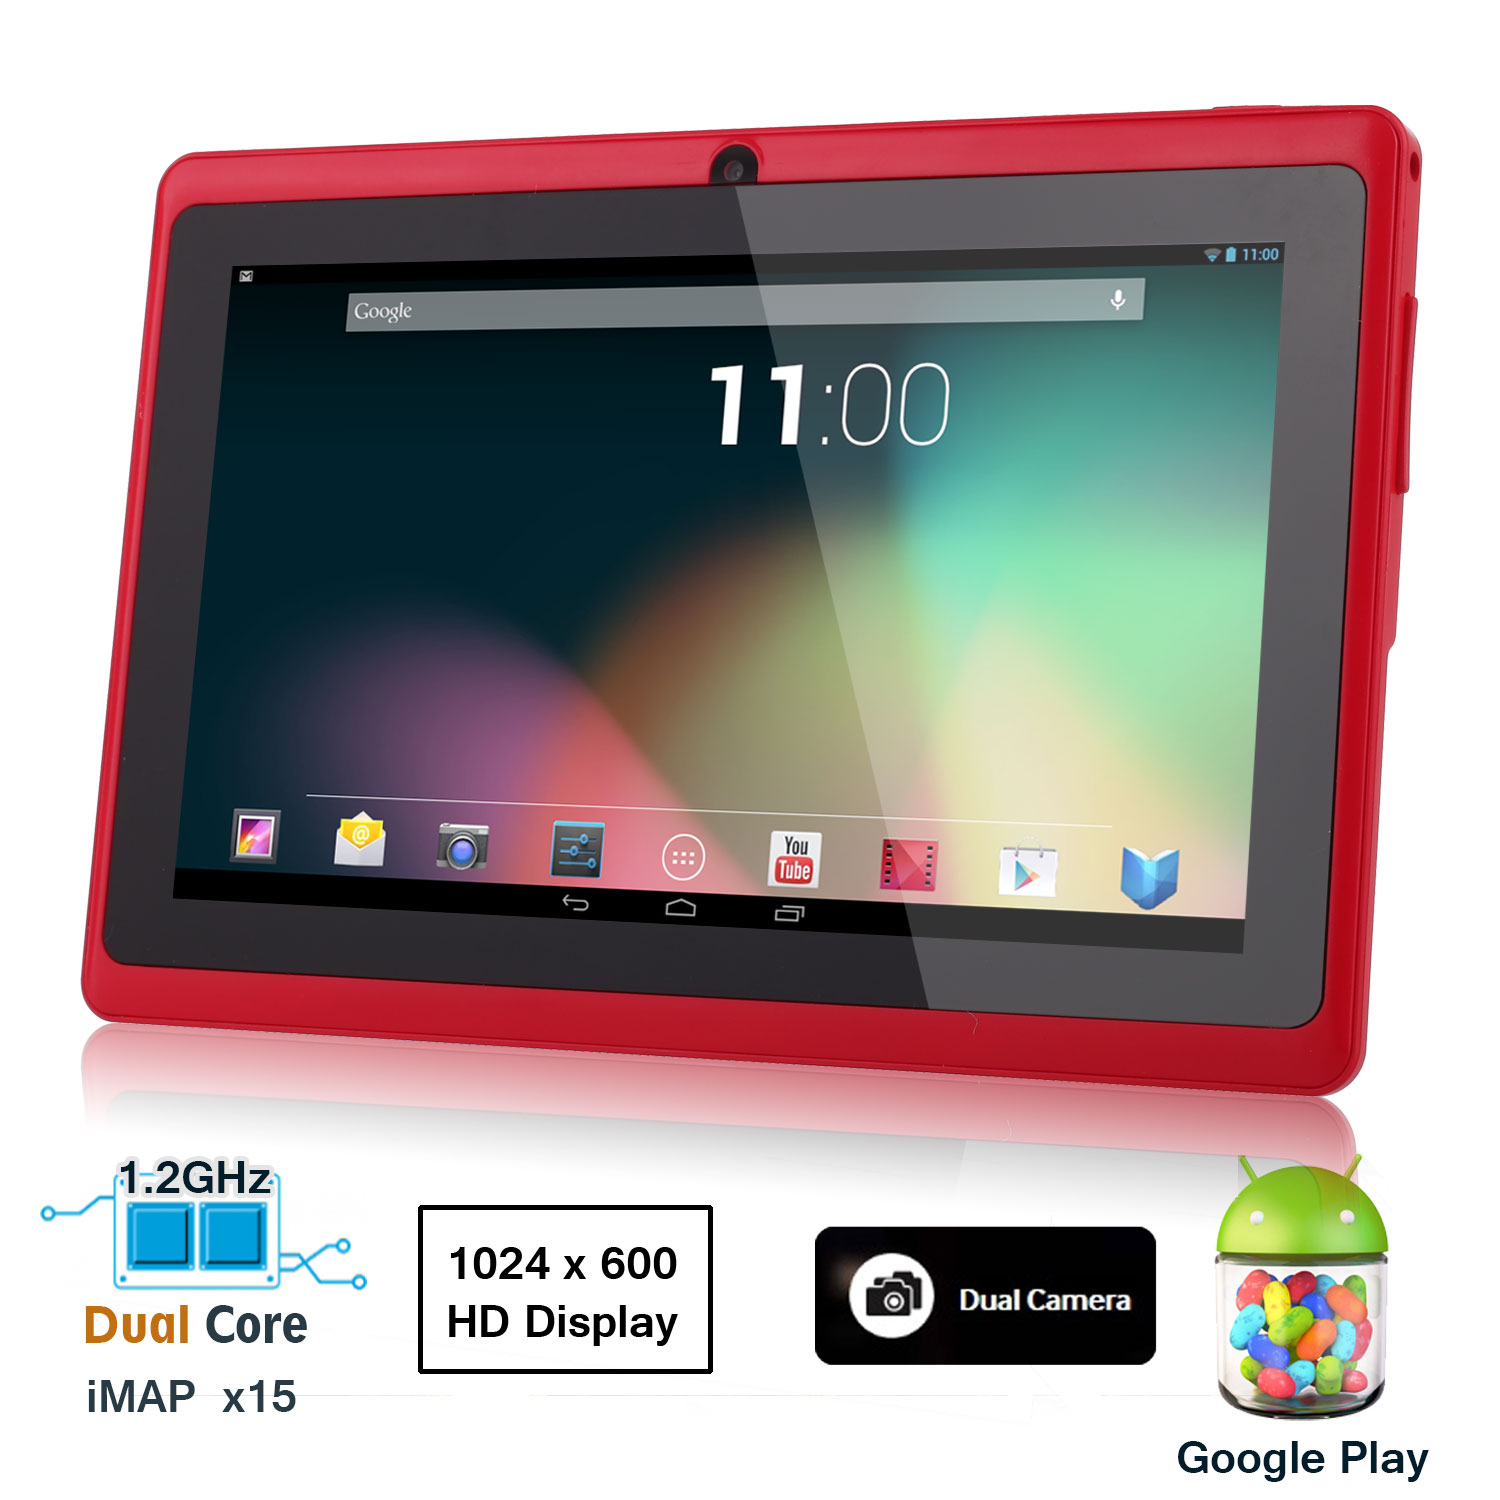 Details about 7'' Android 4.1 Tablet PC iMAPX15 4GB Capacitive Dual